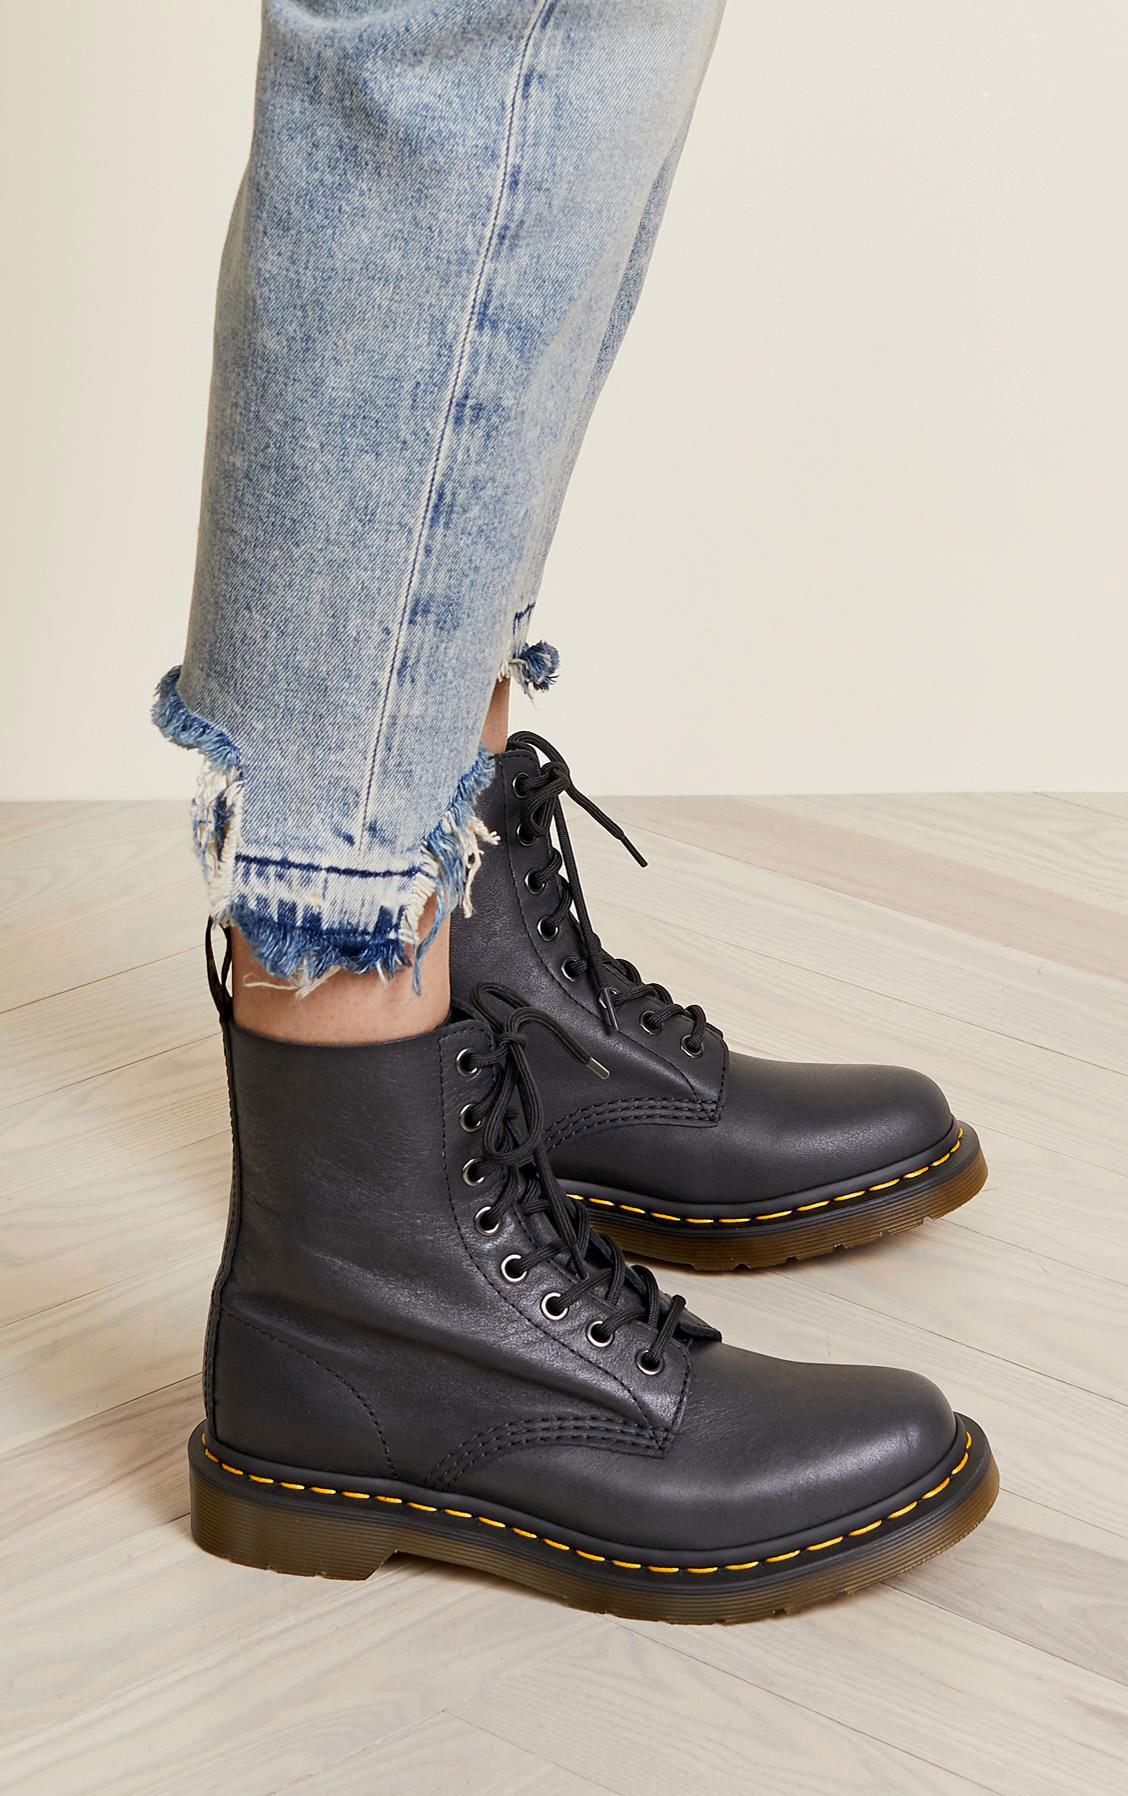 Lifestyle blogger Lexi of Glitter, Inc. shares her favorite weekly finds from around the web, including these new Dr. Martens Pascal Virginia 8-Eye Combat Boot with softer leather and no breaking in time | glitterinc.com | @glitterinc